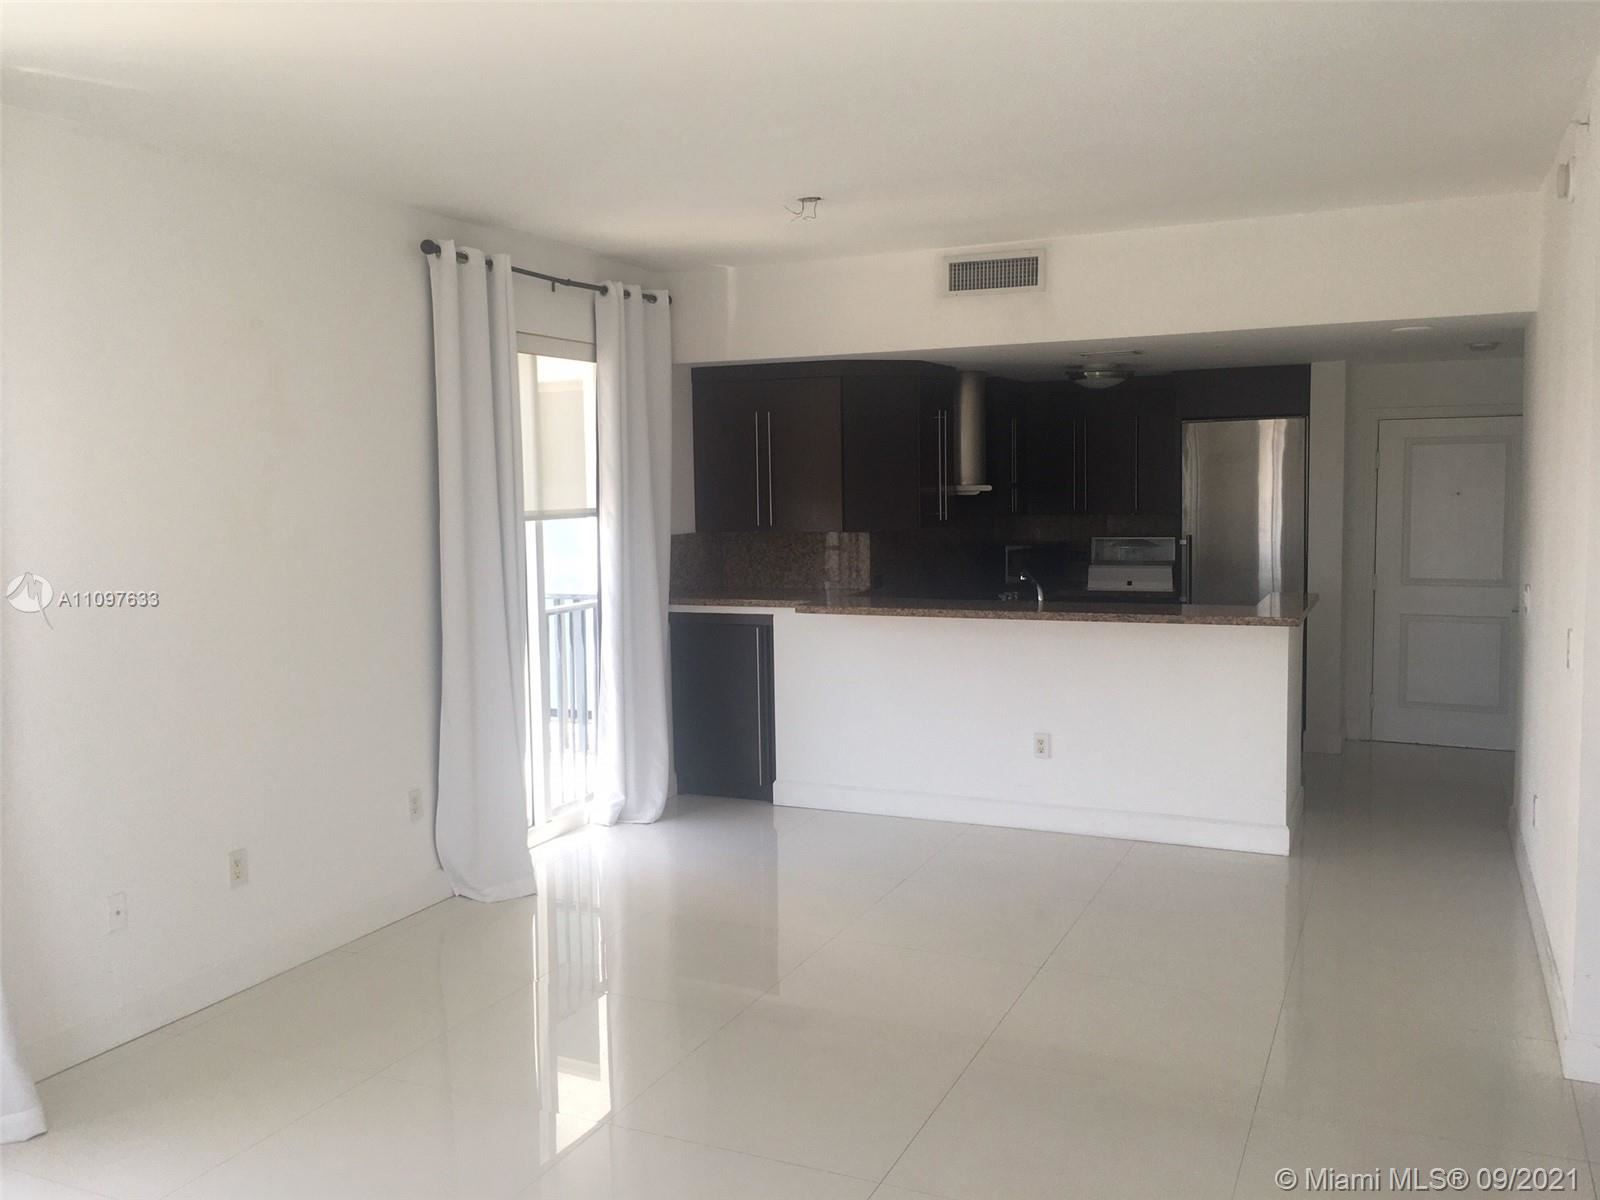 Photo of 10 Aragon Ave #1517, Coral Gables, FL 33134 (MLS # A11097633)